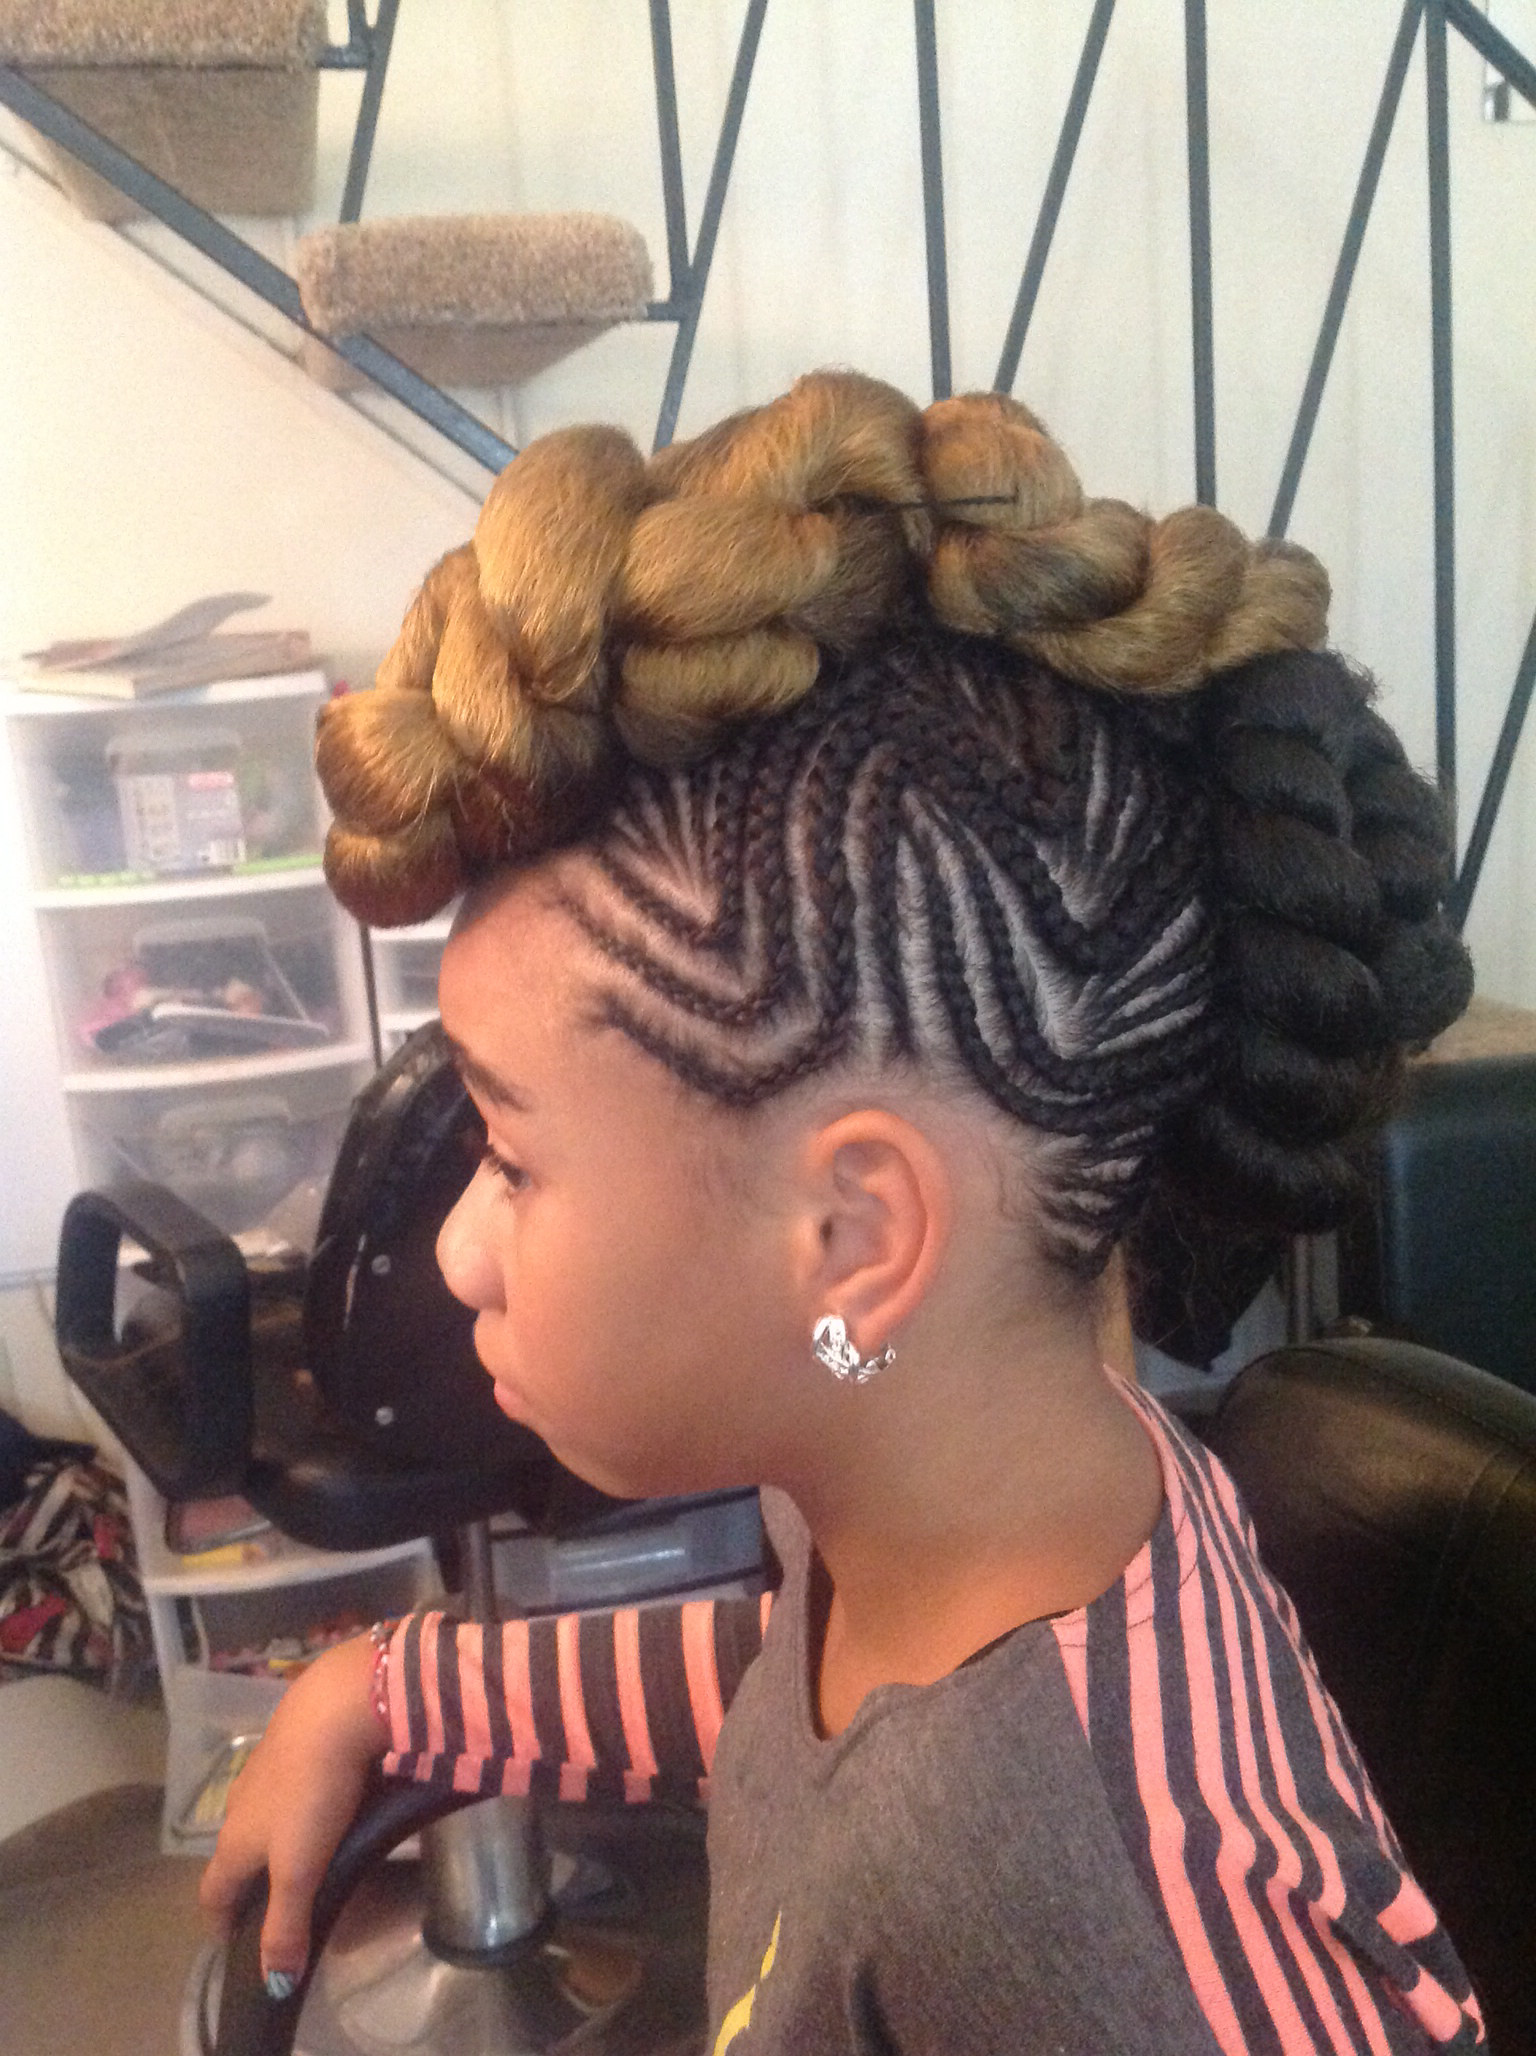 15 Foremost Braided Mohawk Hairstyles – Mohawk With Braids Pertaining To Famous Twisted And Braided Mohawk Hairstyles (Gallery 15 of 20)